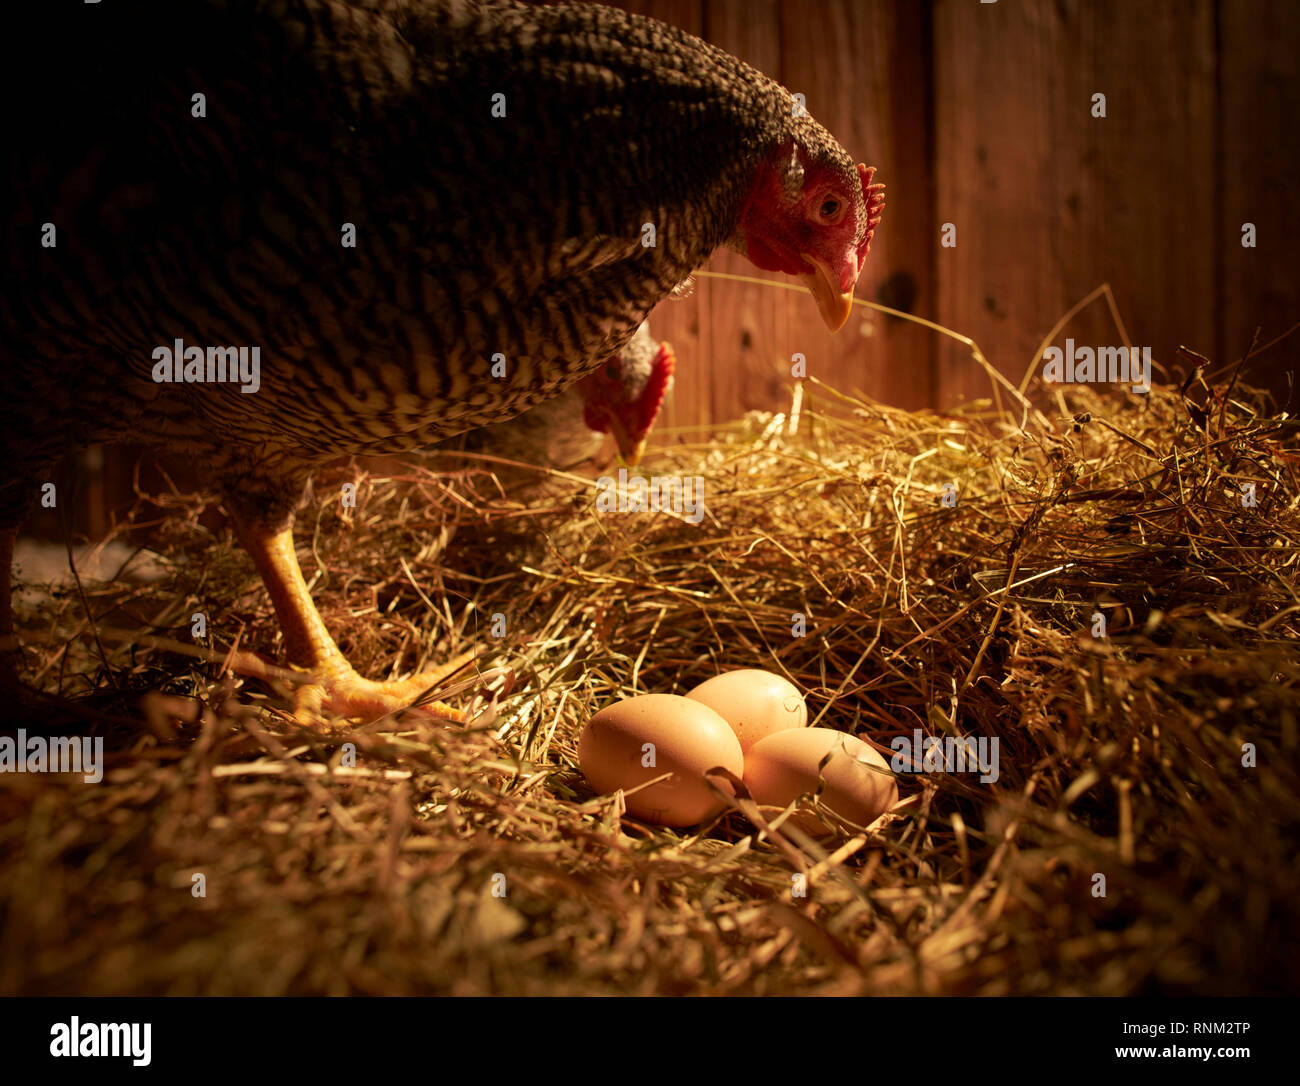 Domestic chicken, Amrock Bantam. Two hens at nest with eggs in a coop. Germany. - Stock Image